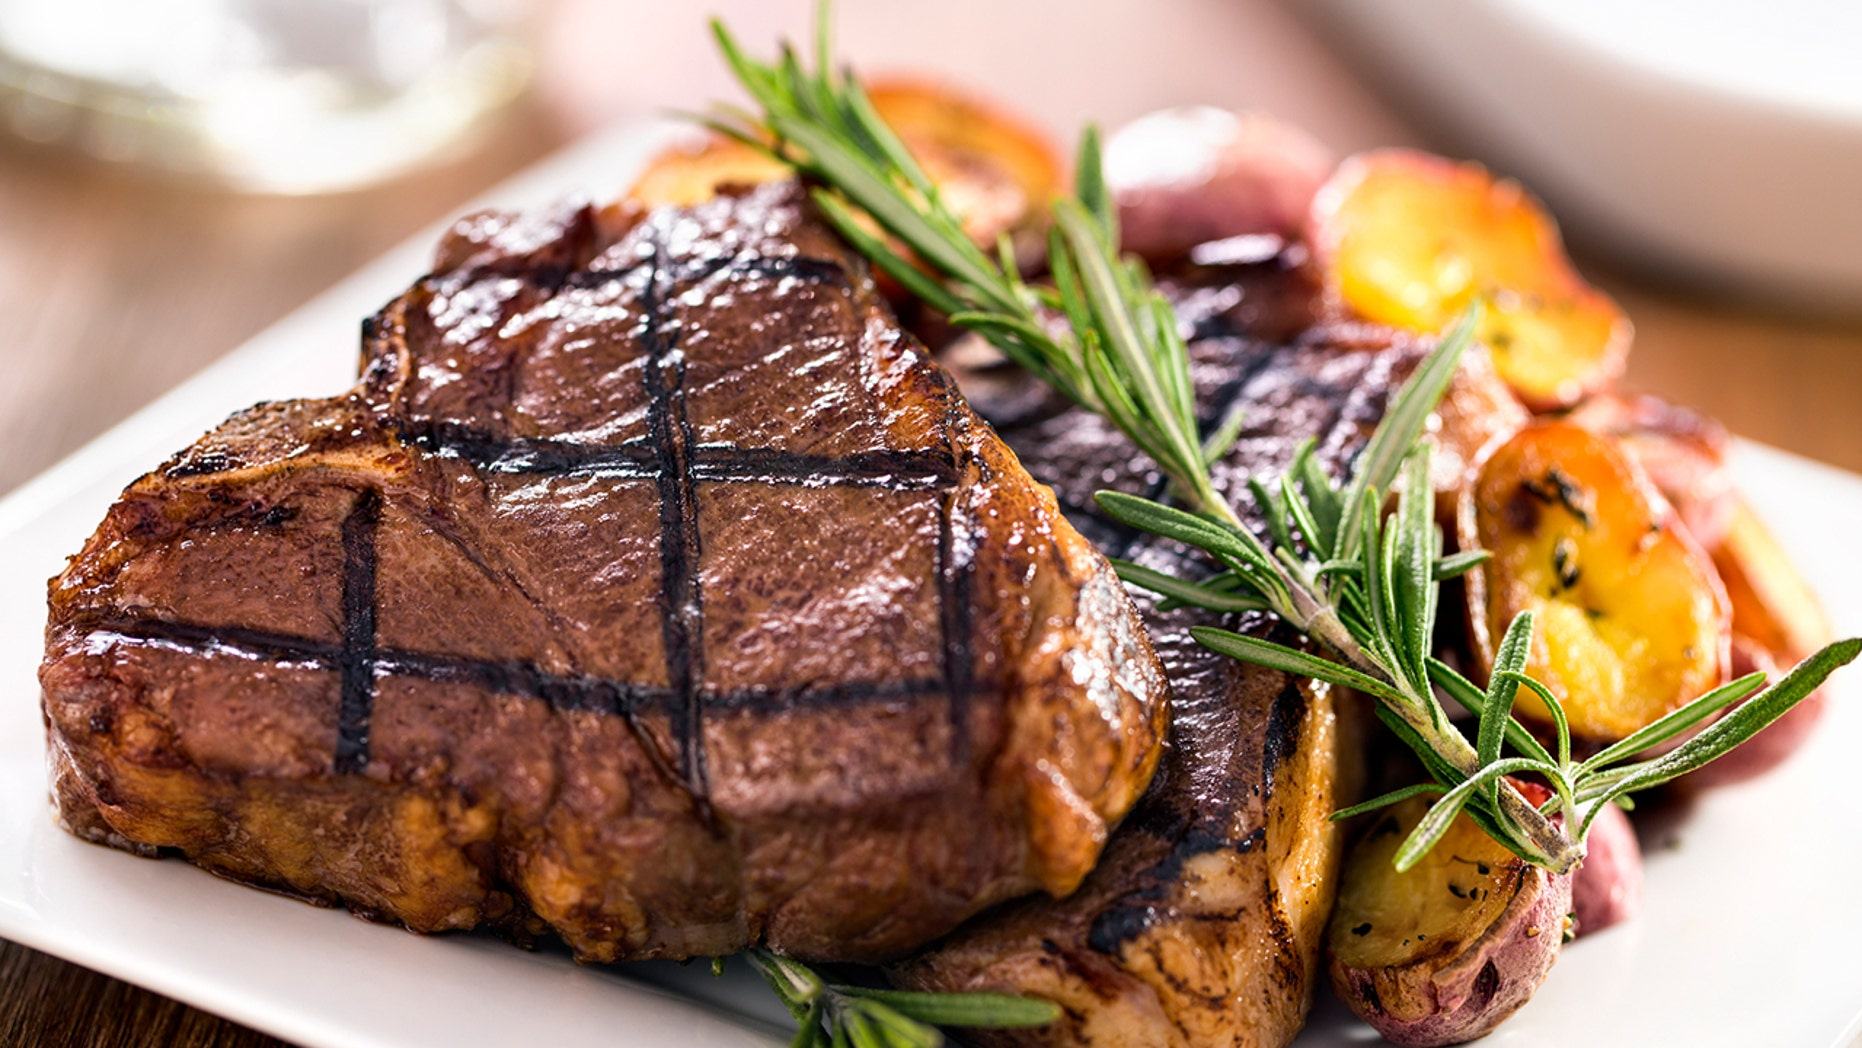 Read up on these tips for getting exactly the steak you want while out to eat.